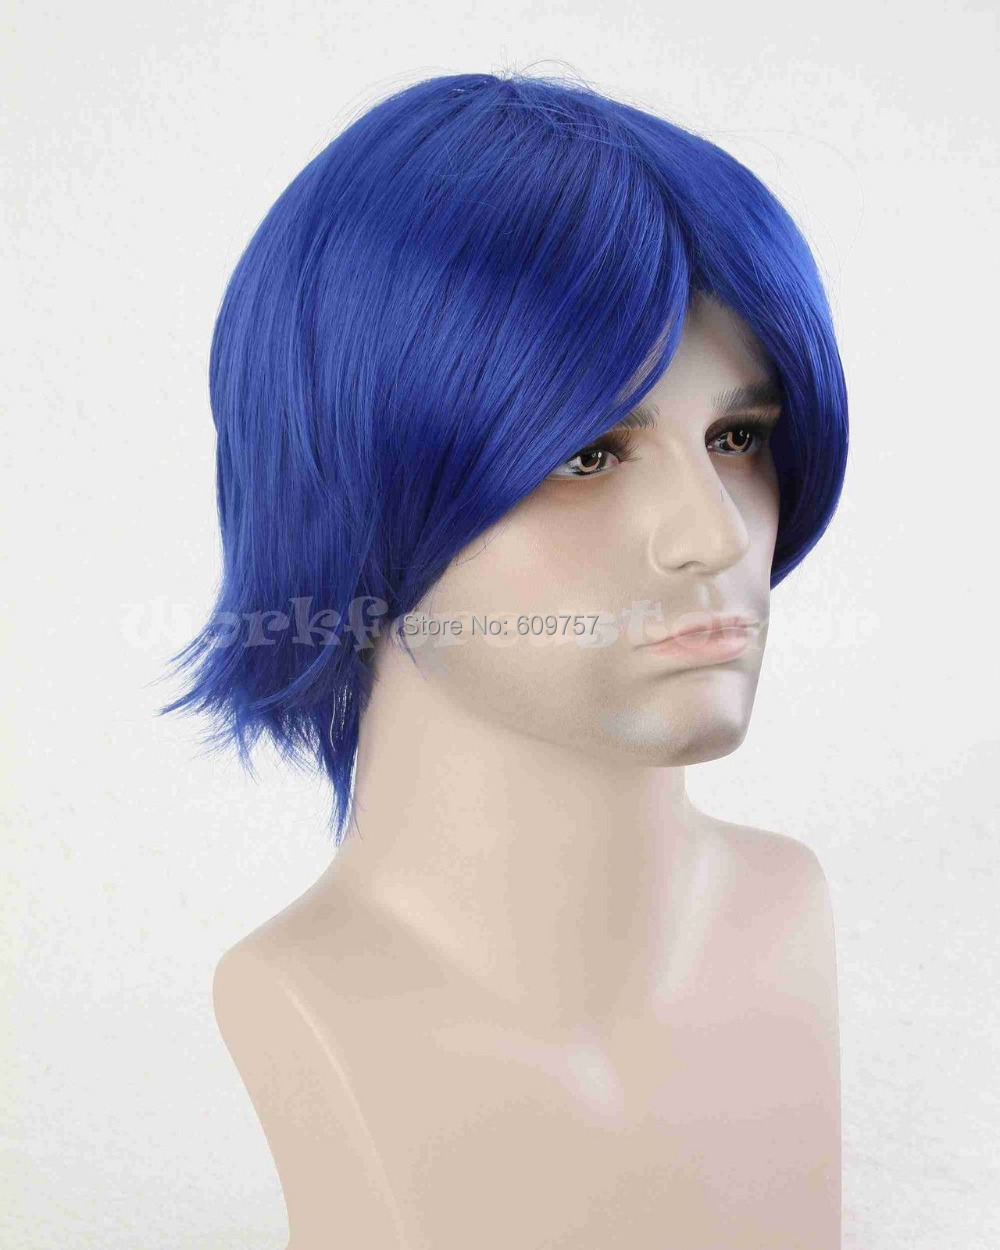 Cool Men s Anime Costume Short Cosplay Party Wig boys Blue synthetic queen  Unisex male man s Kanekalon hair no lace Front Wigs-in Men s Costumes from  ... a8fda61b6